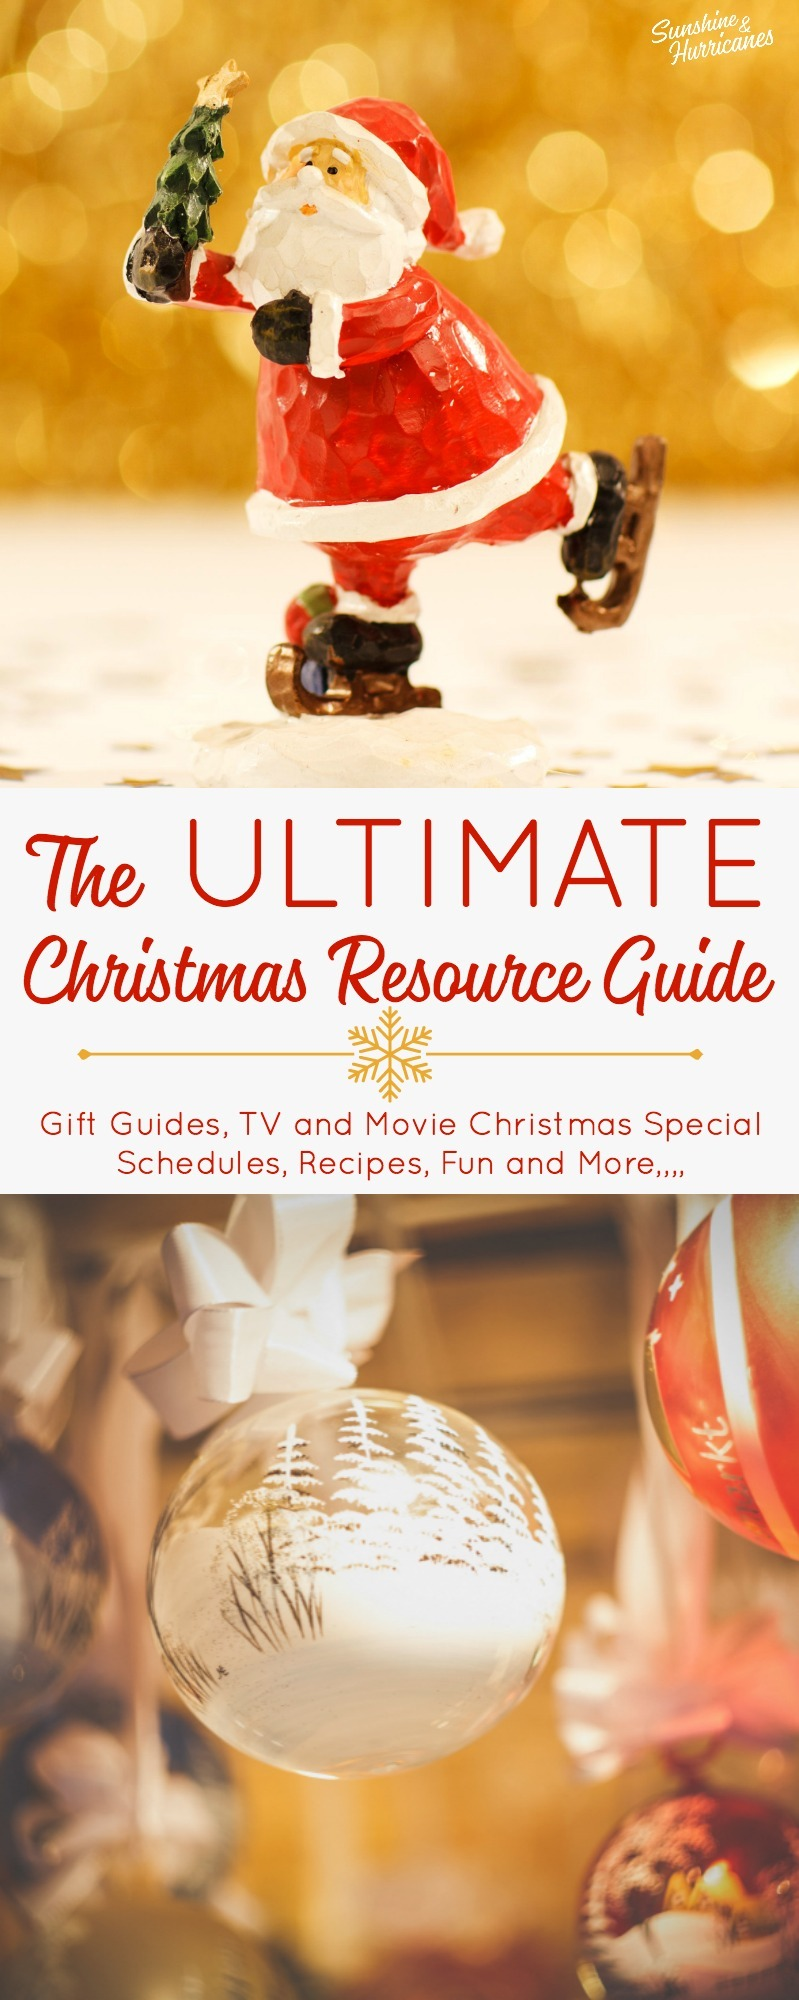 The Ultimate Christmas Resource Guide - Recipes, Traditions, Family Fun, Gift Guides, Christmas TV Special Schedules and More.